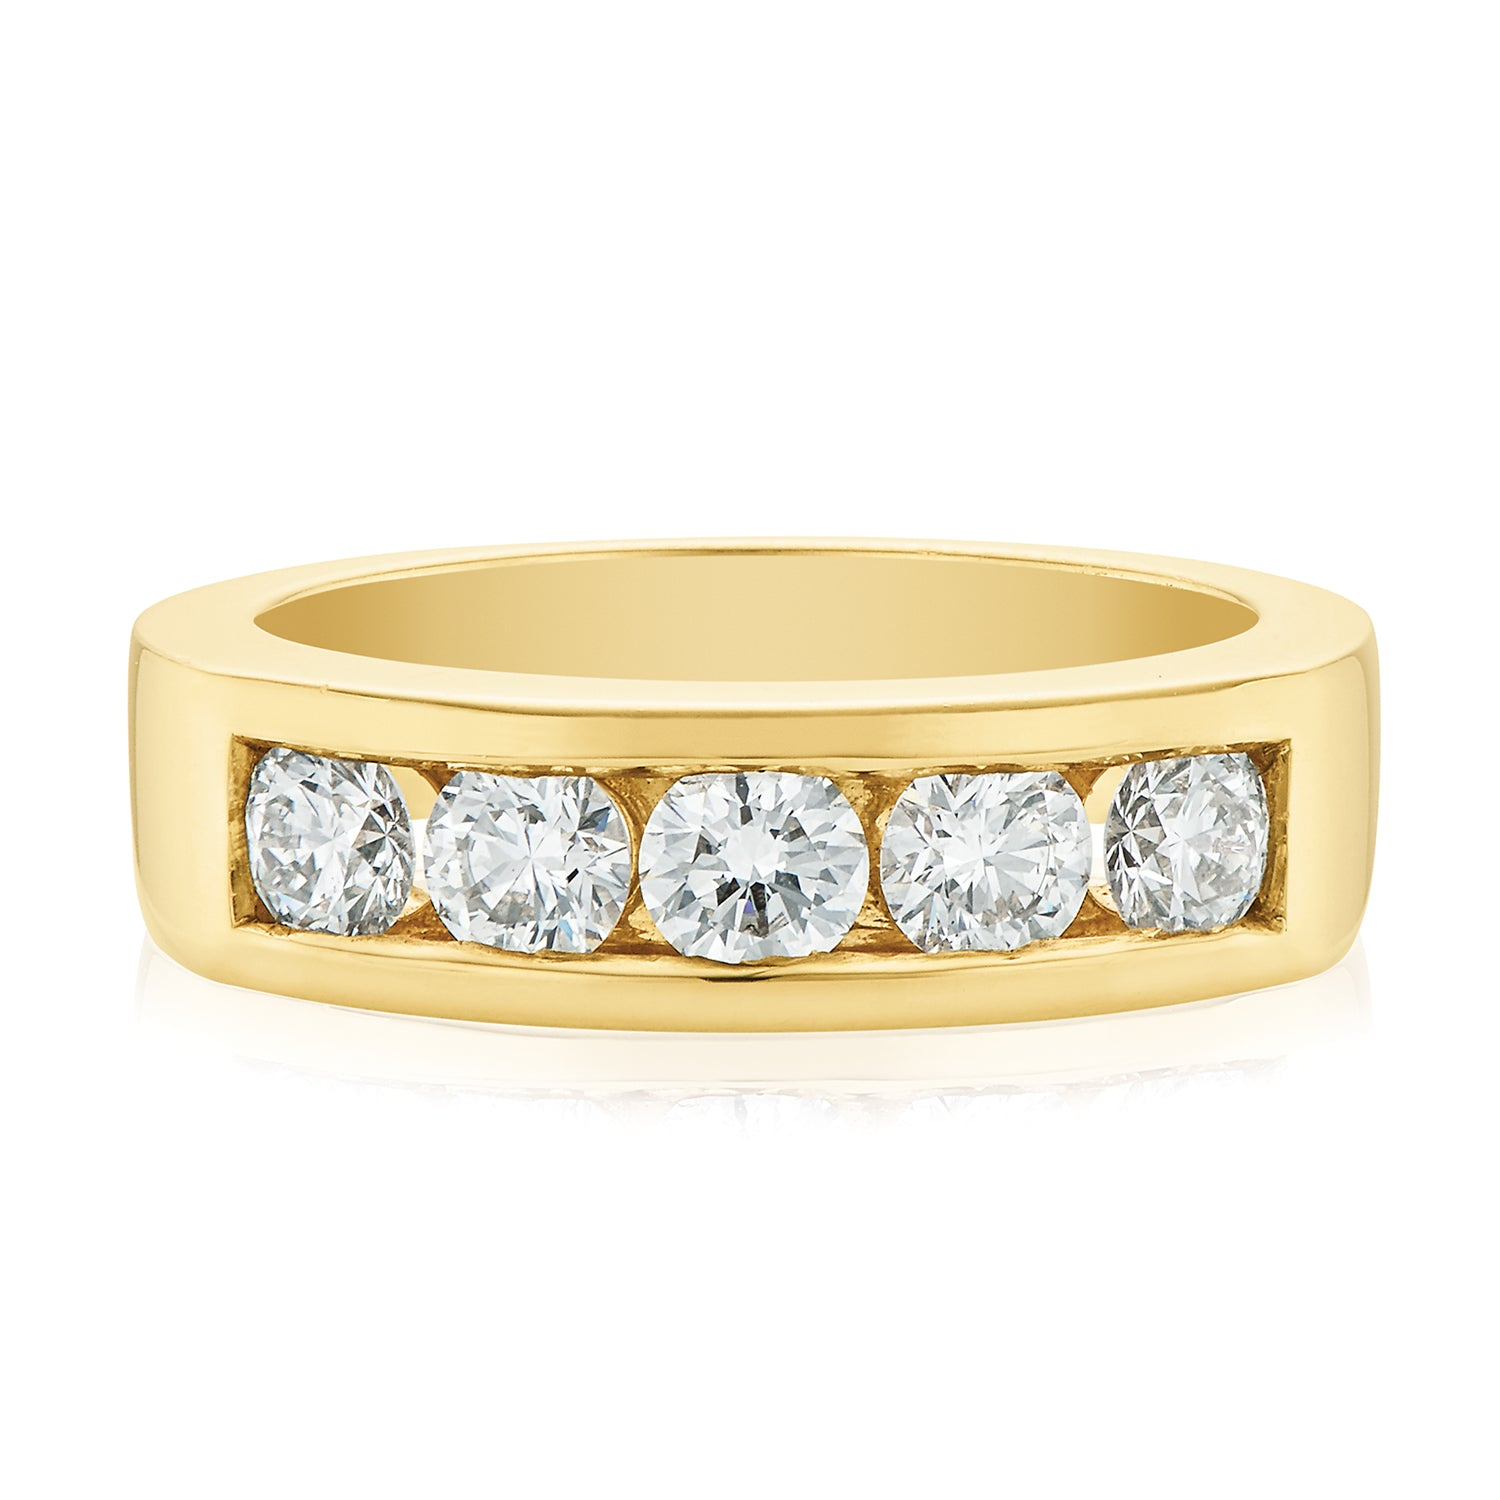 Rand 18ct Yellow Gold Round Brilliant Cut with 1 CARAT tw of Diamonds